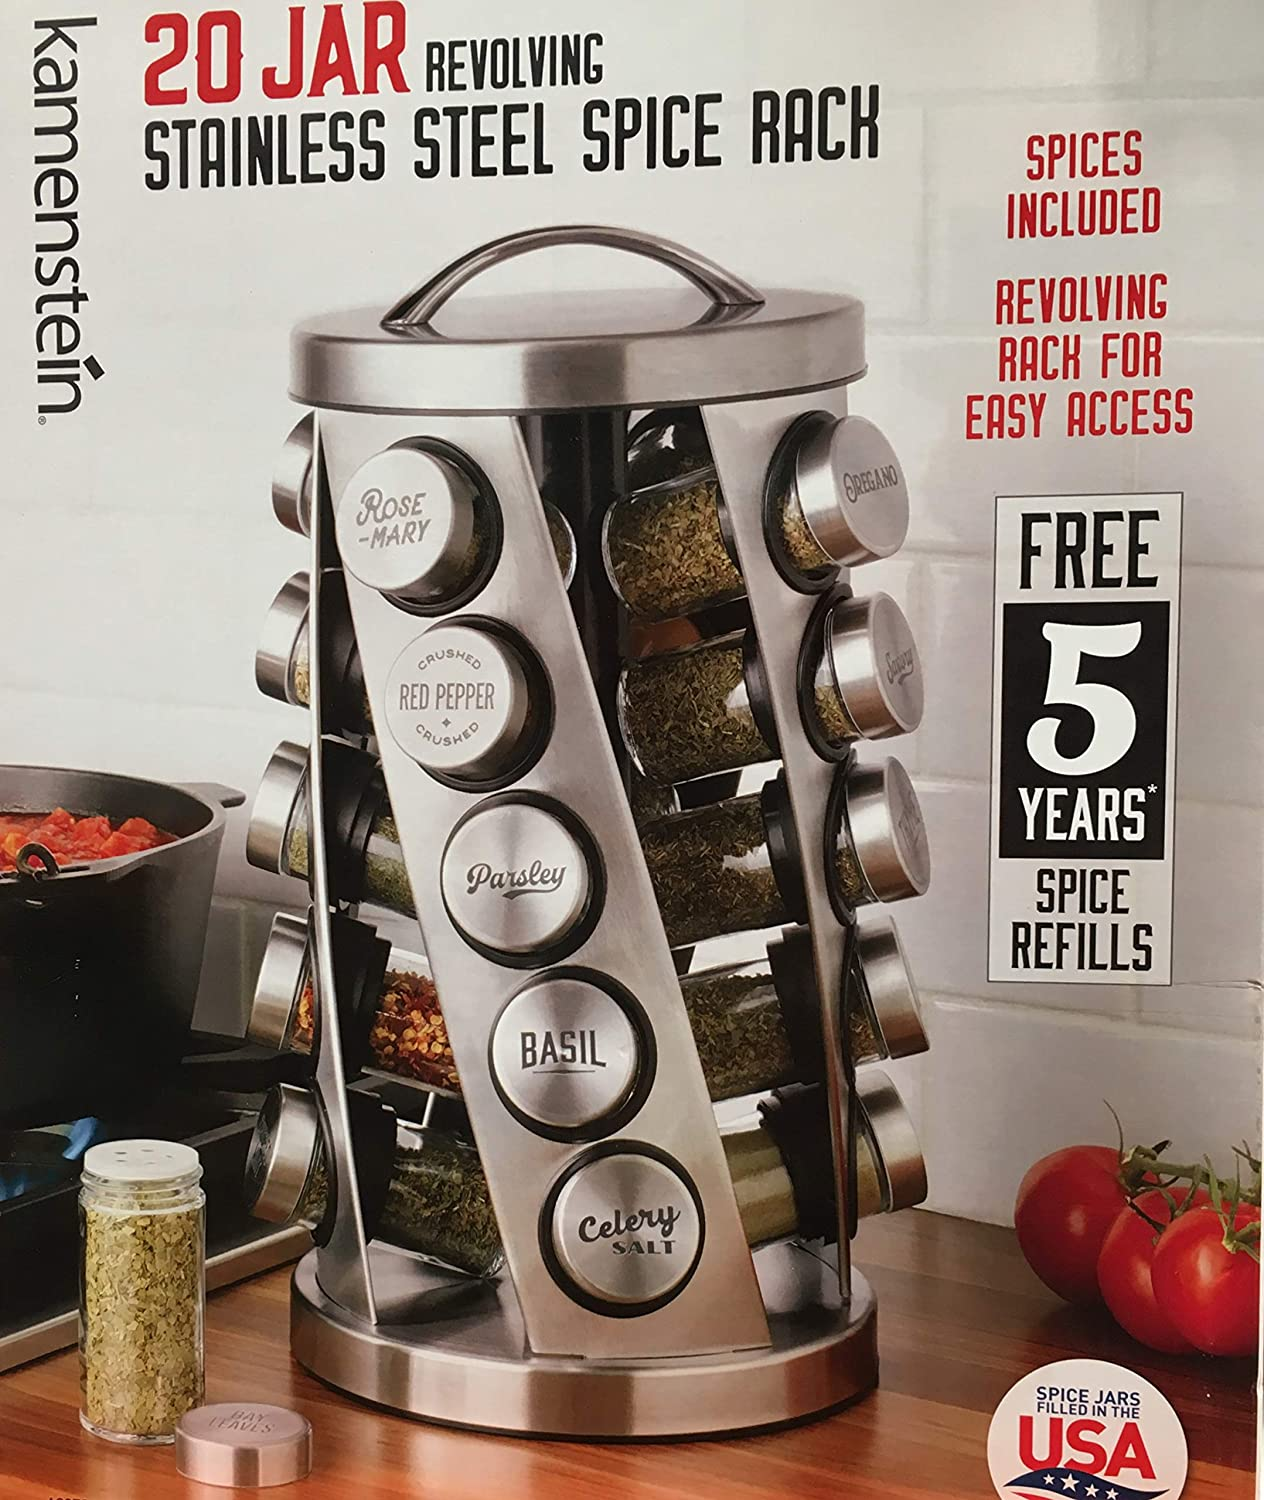 Contemporary Spice Rack Stainless Steel 20 Jars Revolving Rack for Easy Access,Spices Included Plus Free 5 Years of Refills, Filled in USA Kamenstien